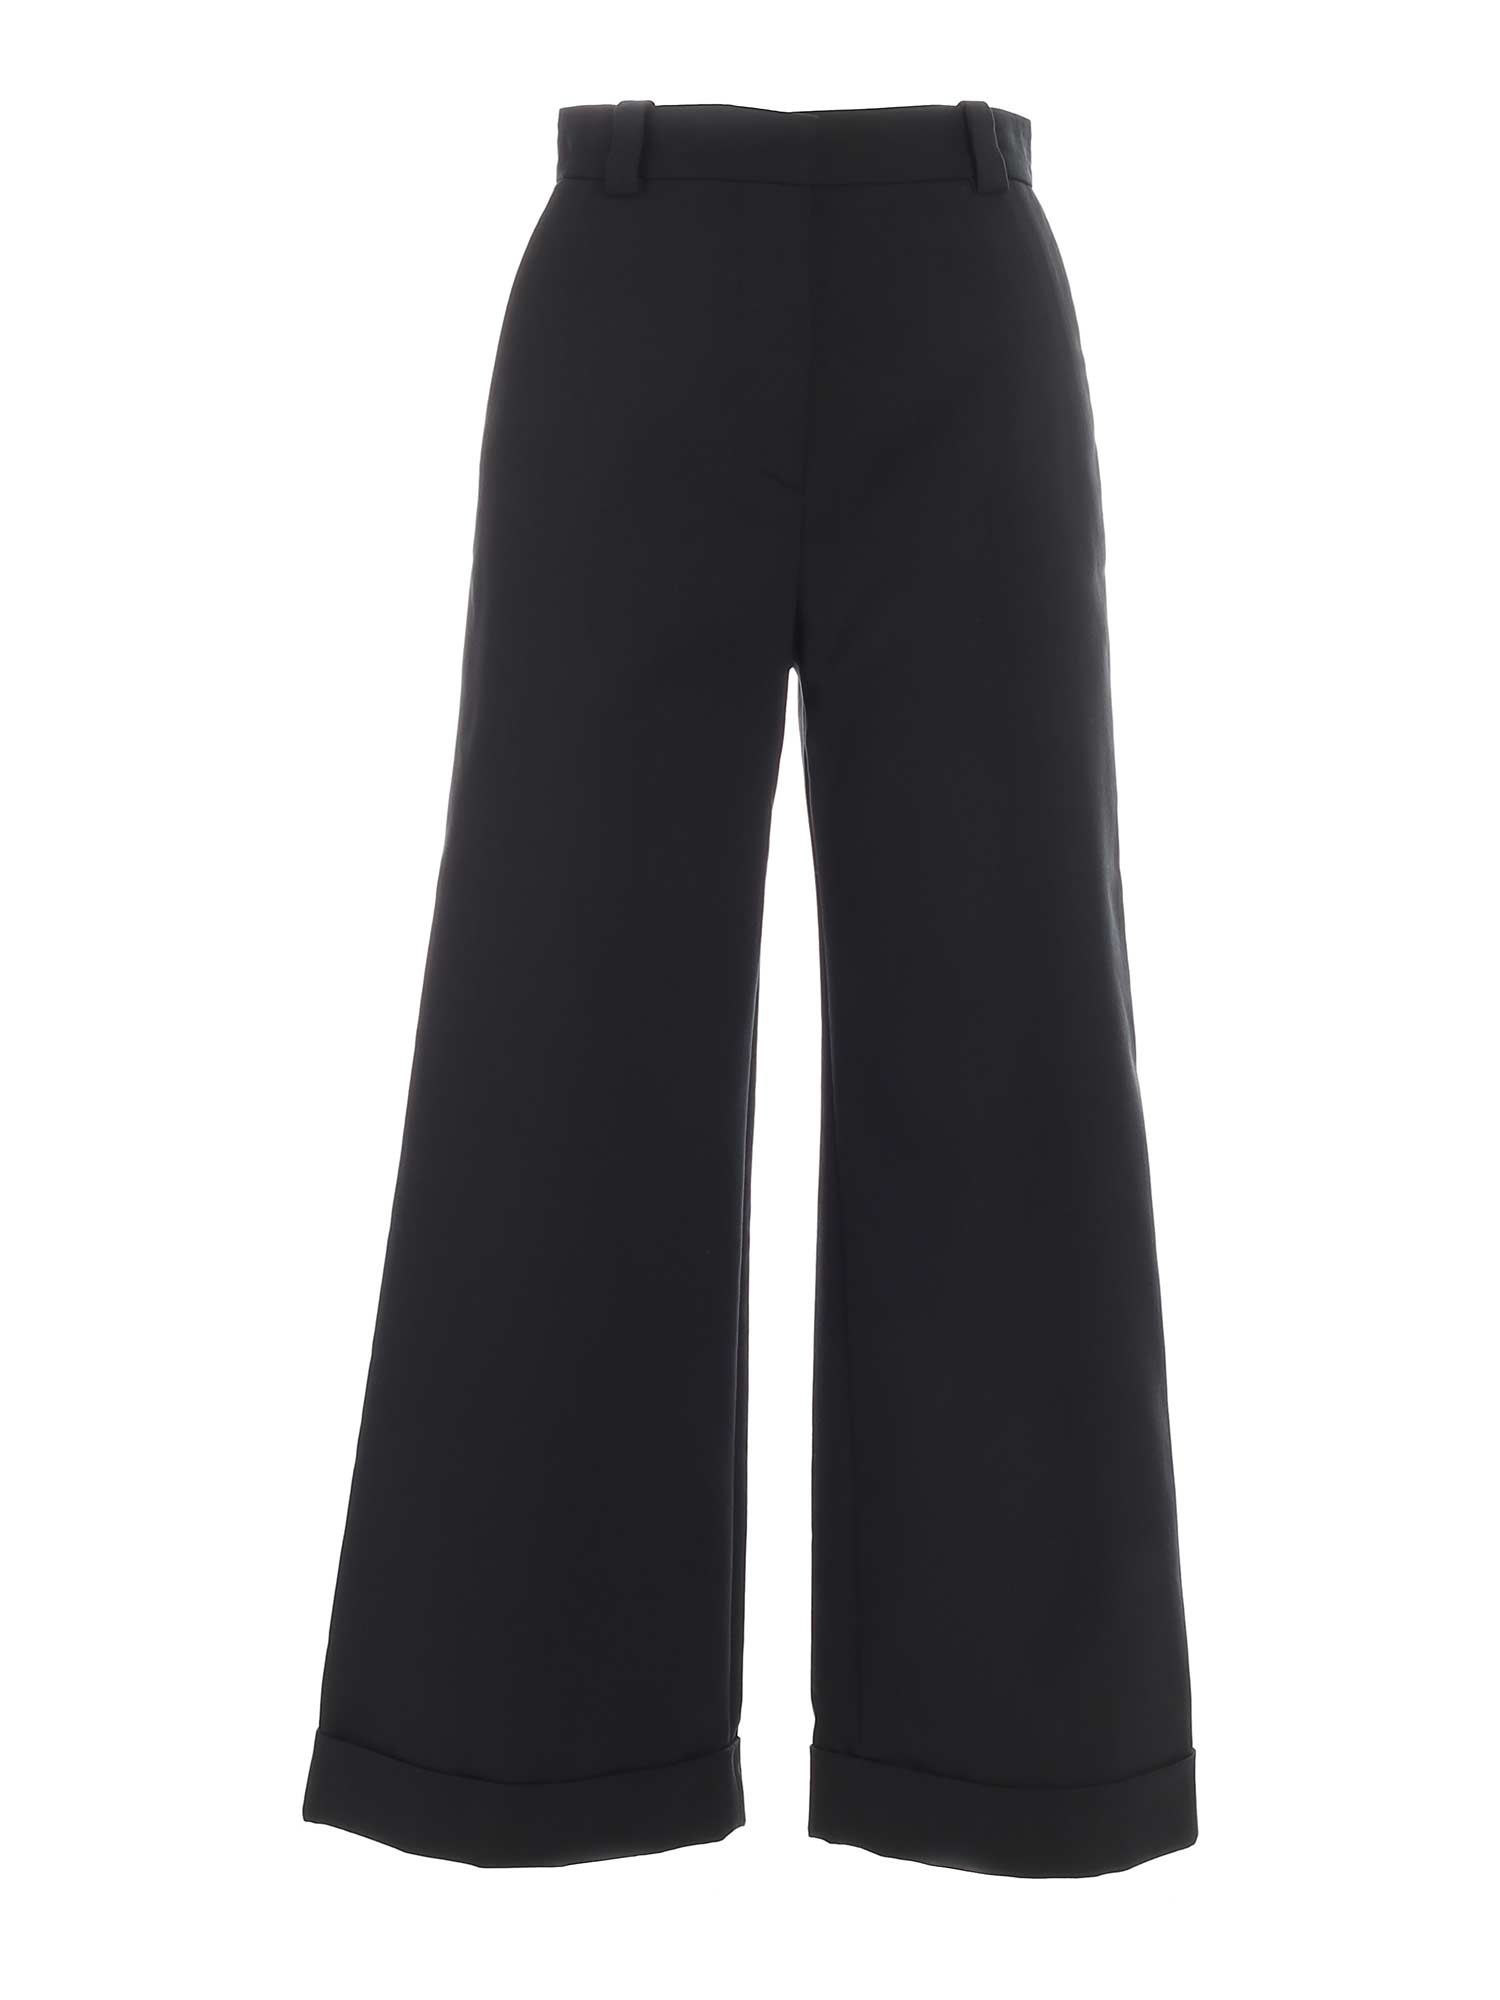 See By Chloé WIDE LEG PANTS IN GREEN